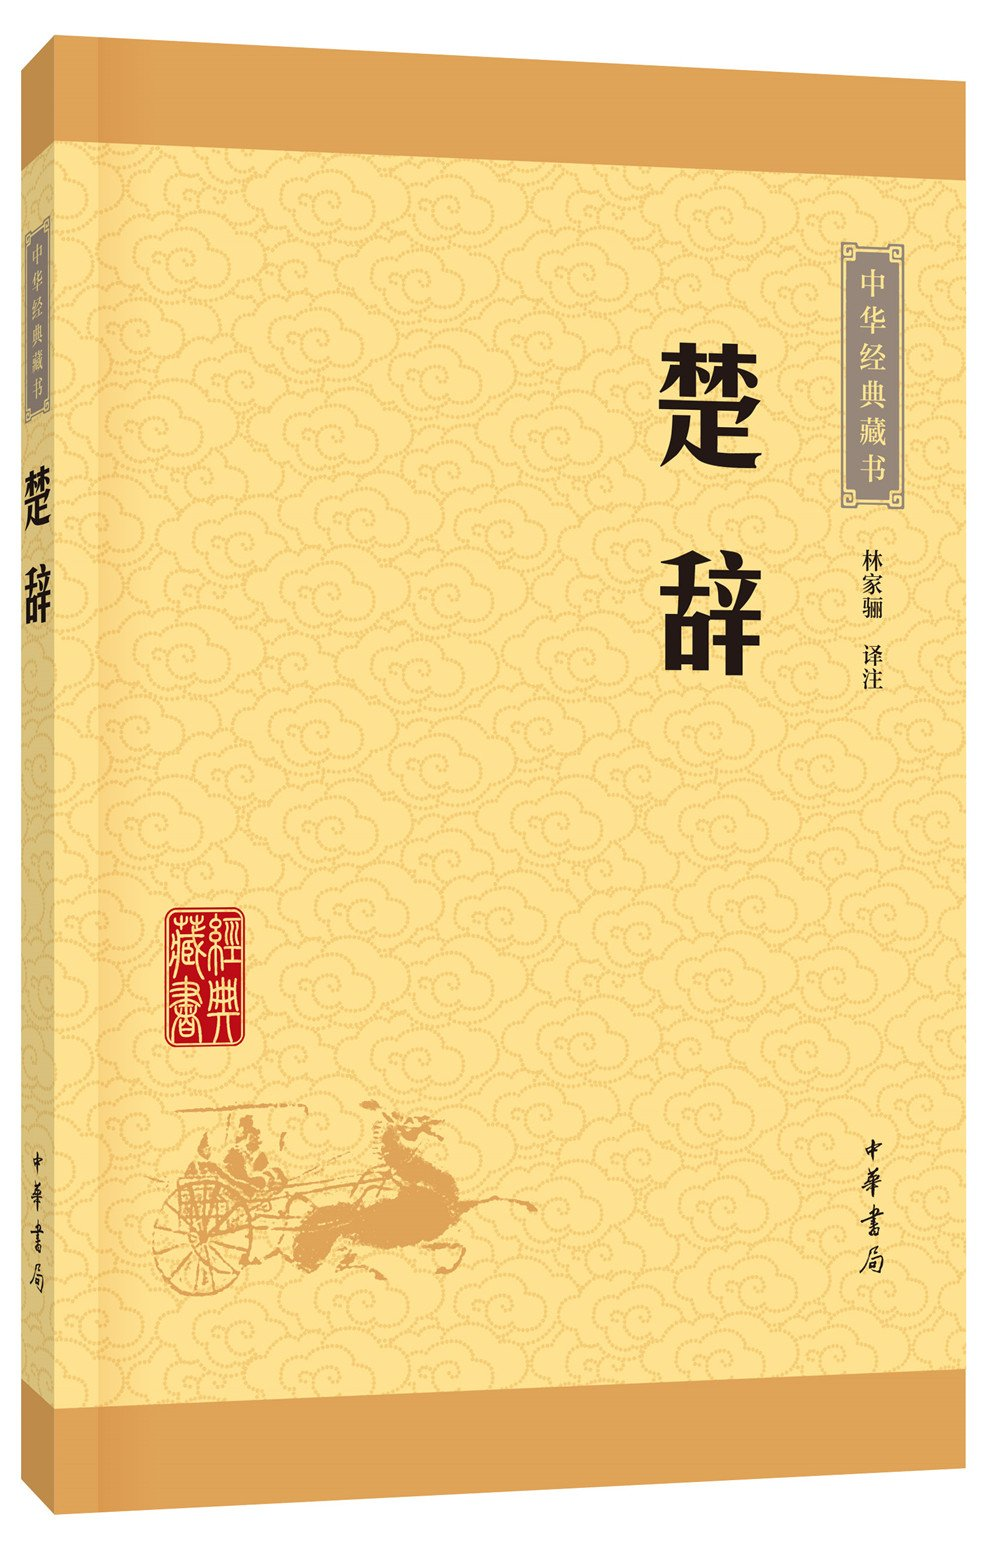 Spot Chu-Cian Chinese Classics Collection Chinese book Bureau